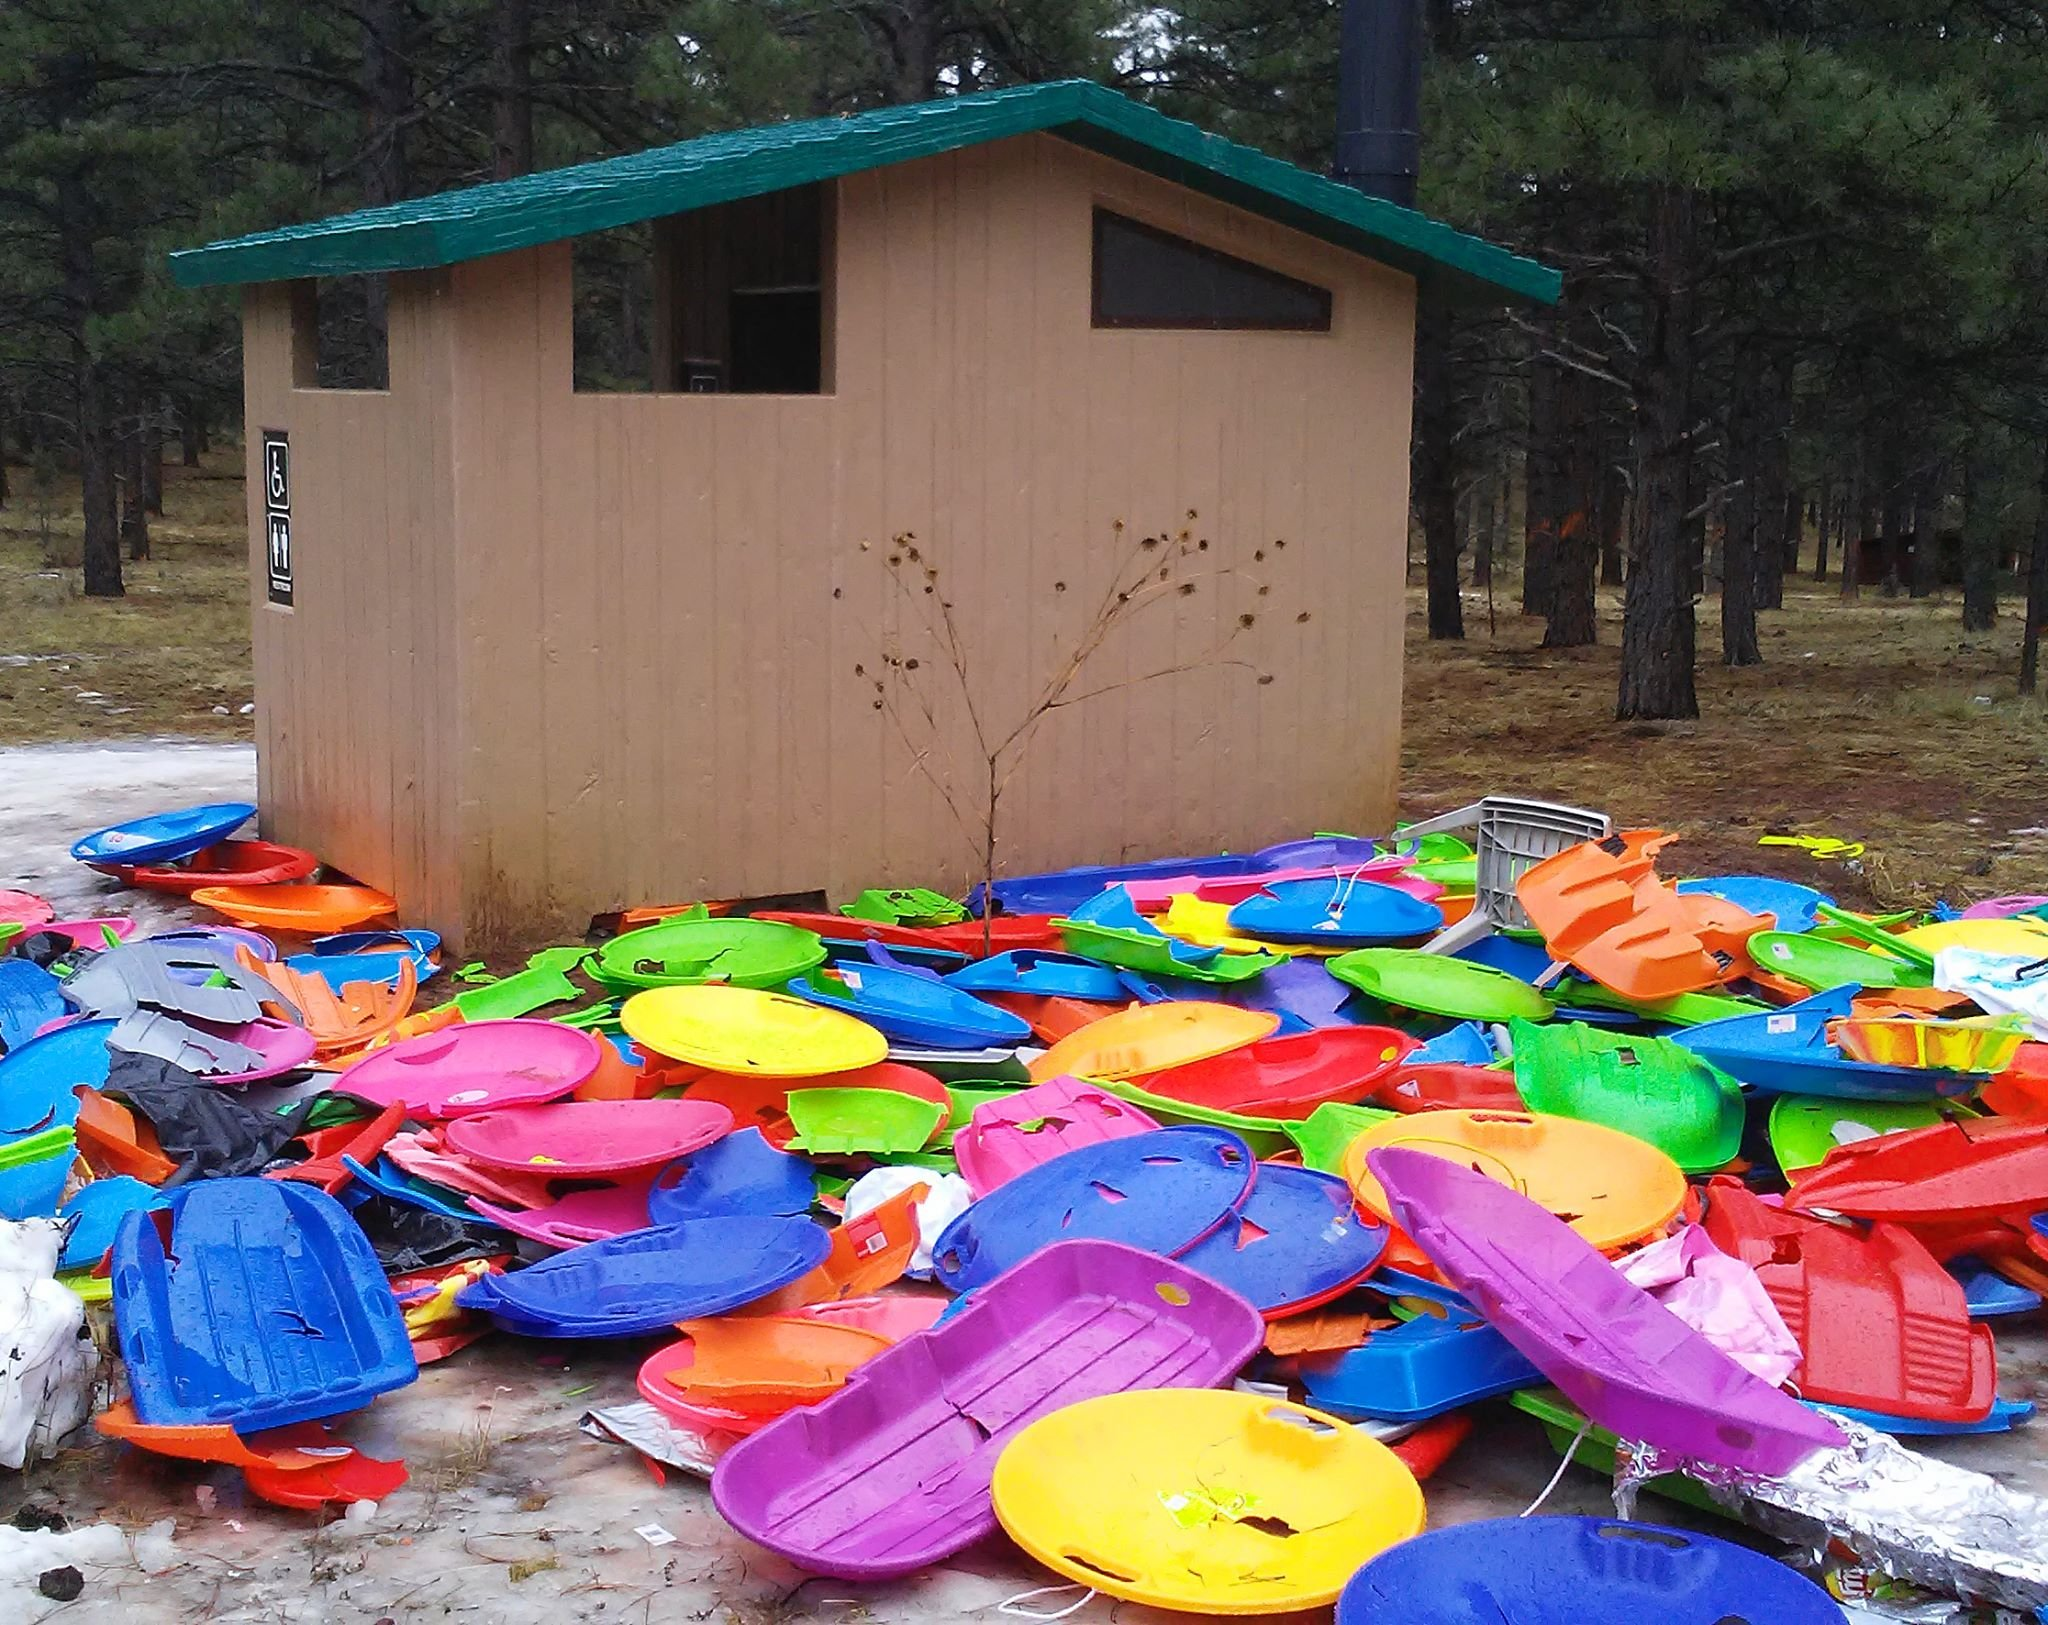 Trash left behind by visitors (Source: U.S. Forest Service - Kaibab National Forest)